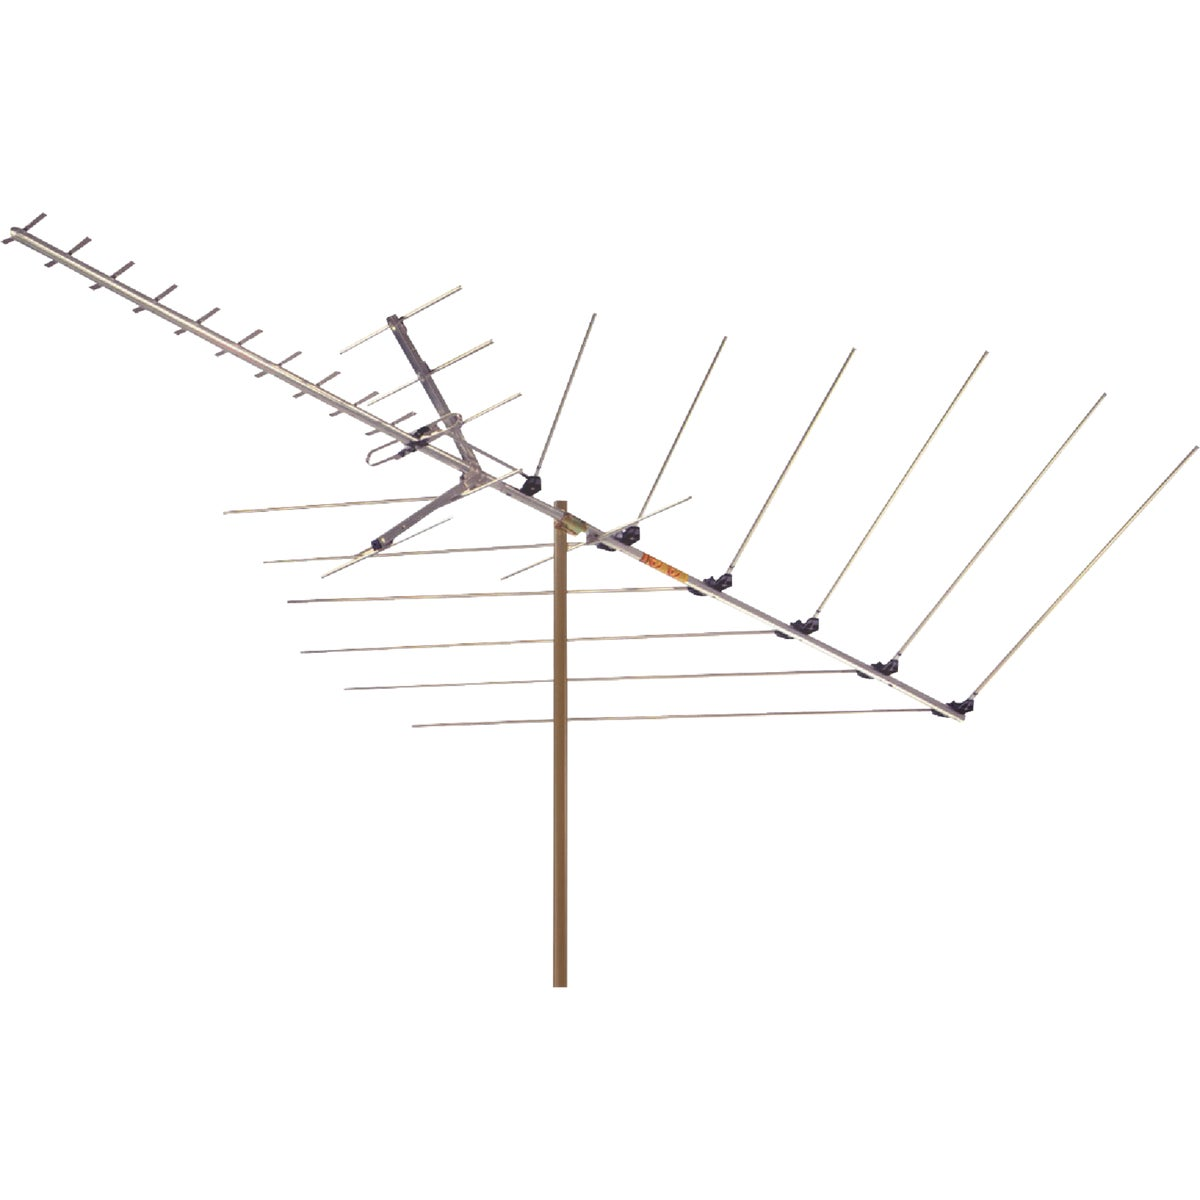 U/V/F/HD OUTDOOR ANTENNA